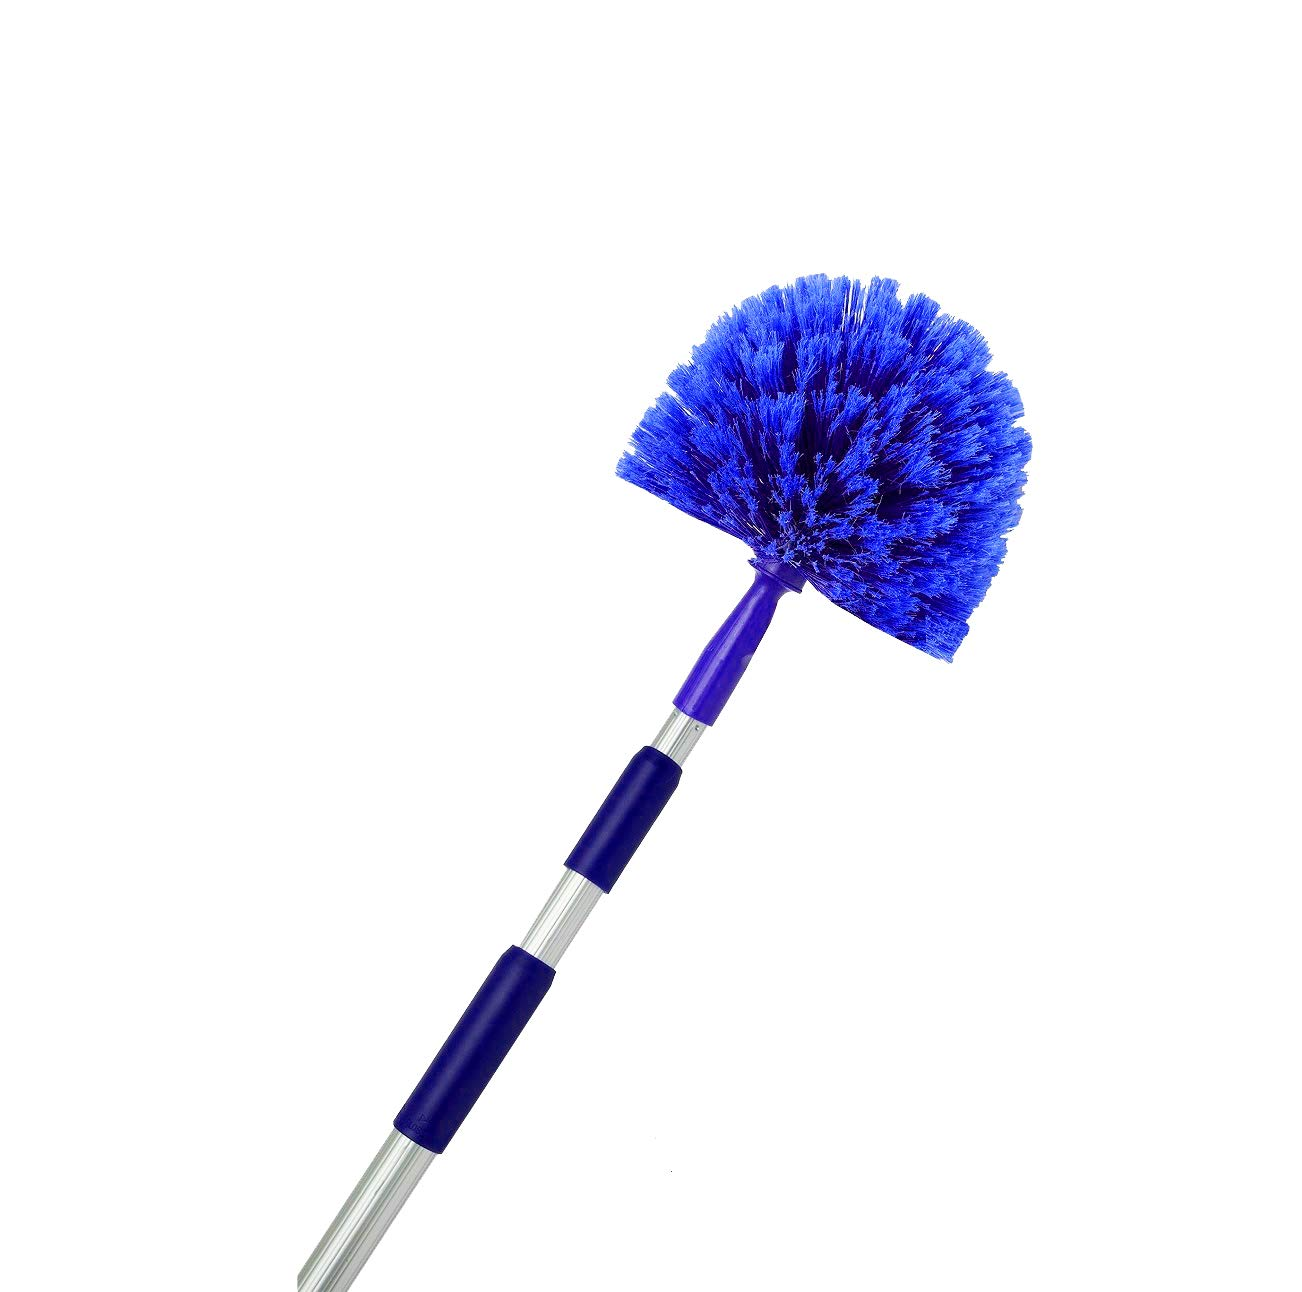 Cobweb Duster, Reach 6 to 15 feet, Ceiling Fan Duster | 3-Stage Telescoping Pole | Medium Stiff Bristles | Long Handle Webster Duster for Cleaning | U.S Duster Co